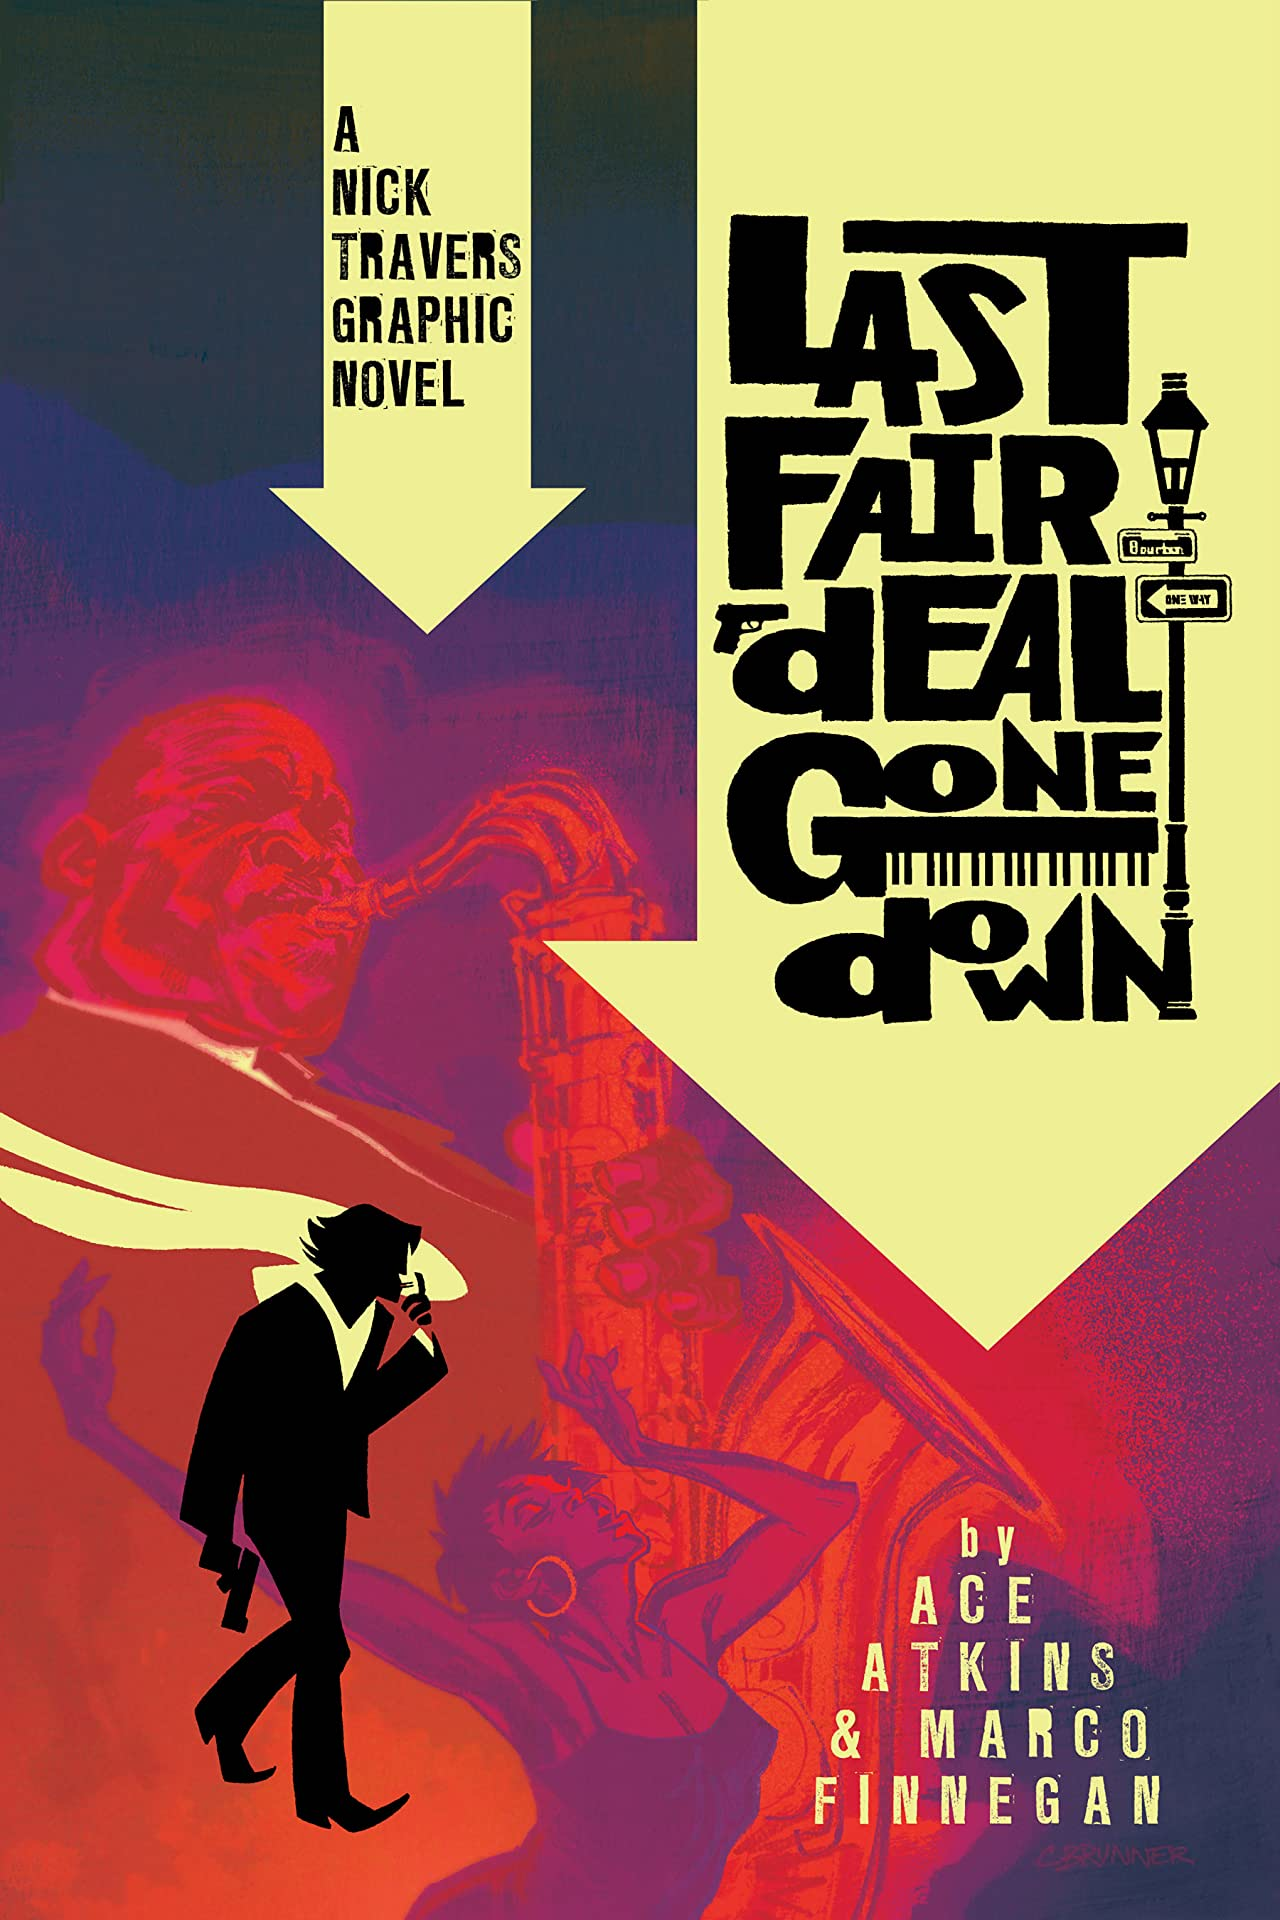 Last Fair Deal Gone Down: A Nick Travers Graphic Novel